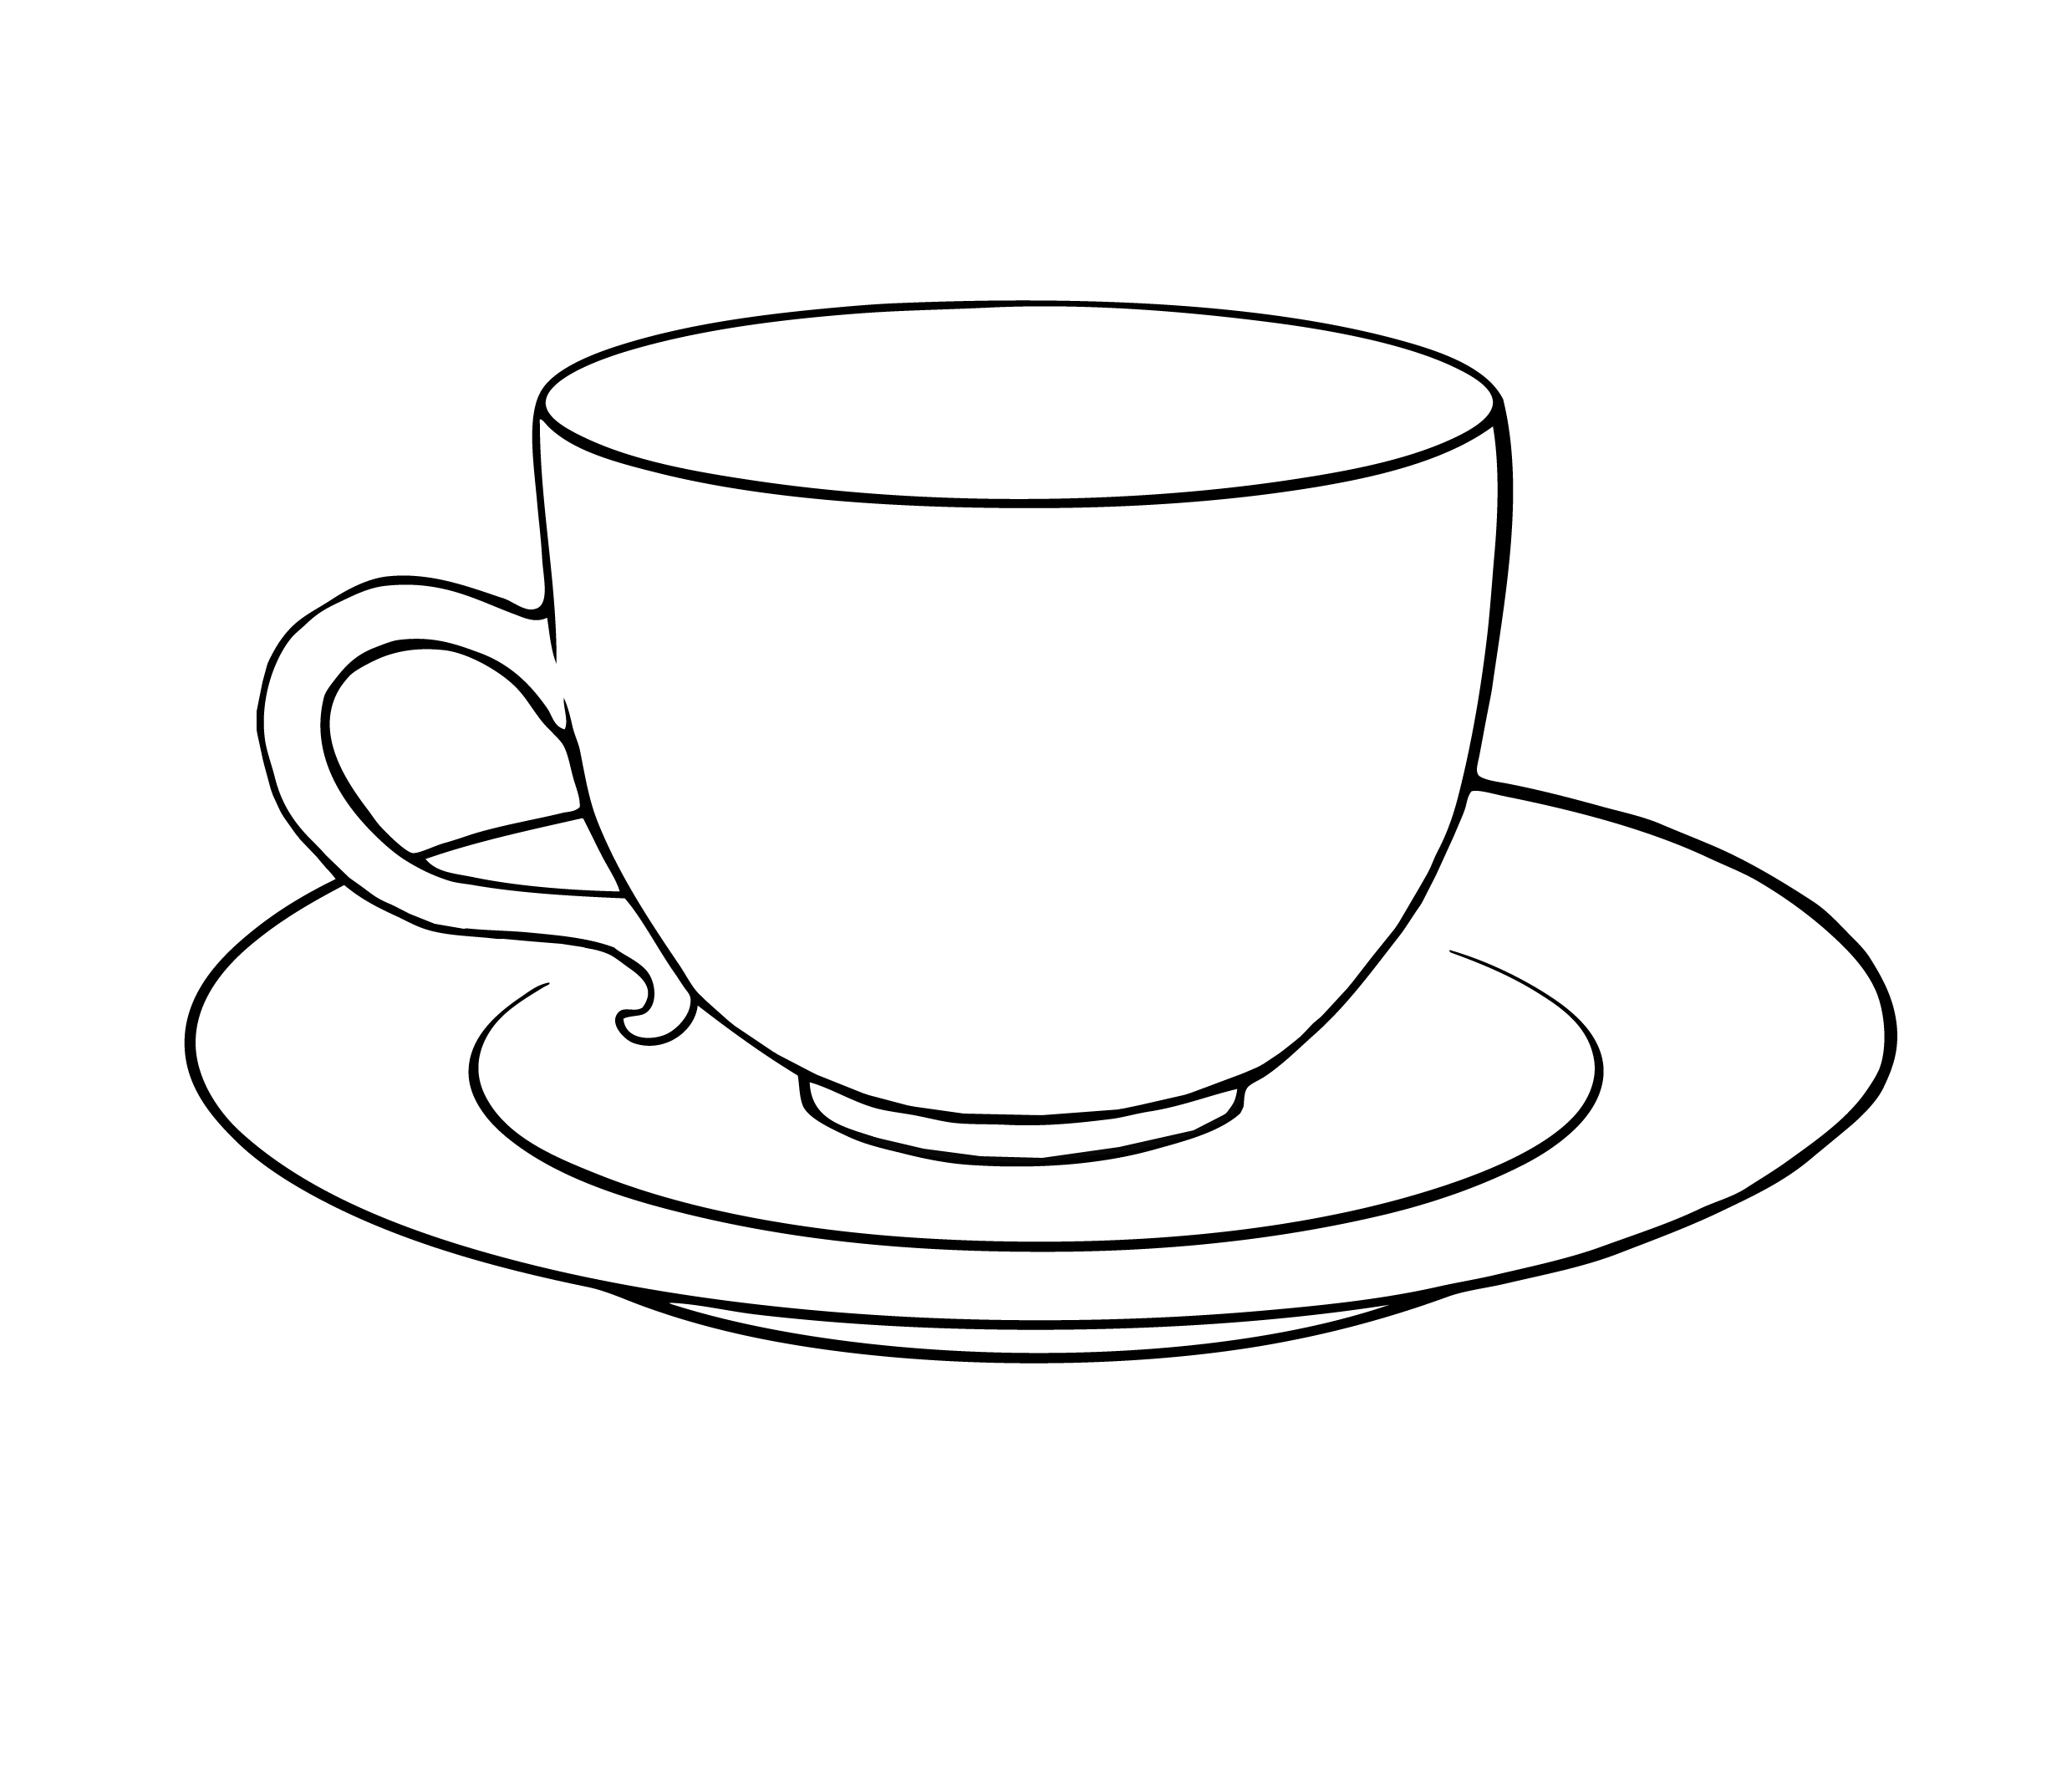 Cup coloring #14, Download drawings